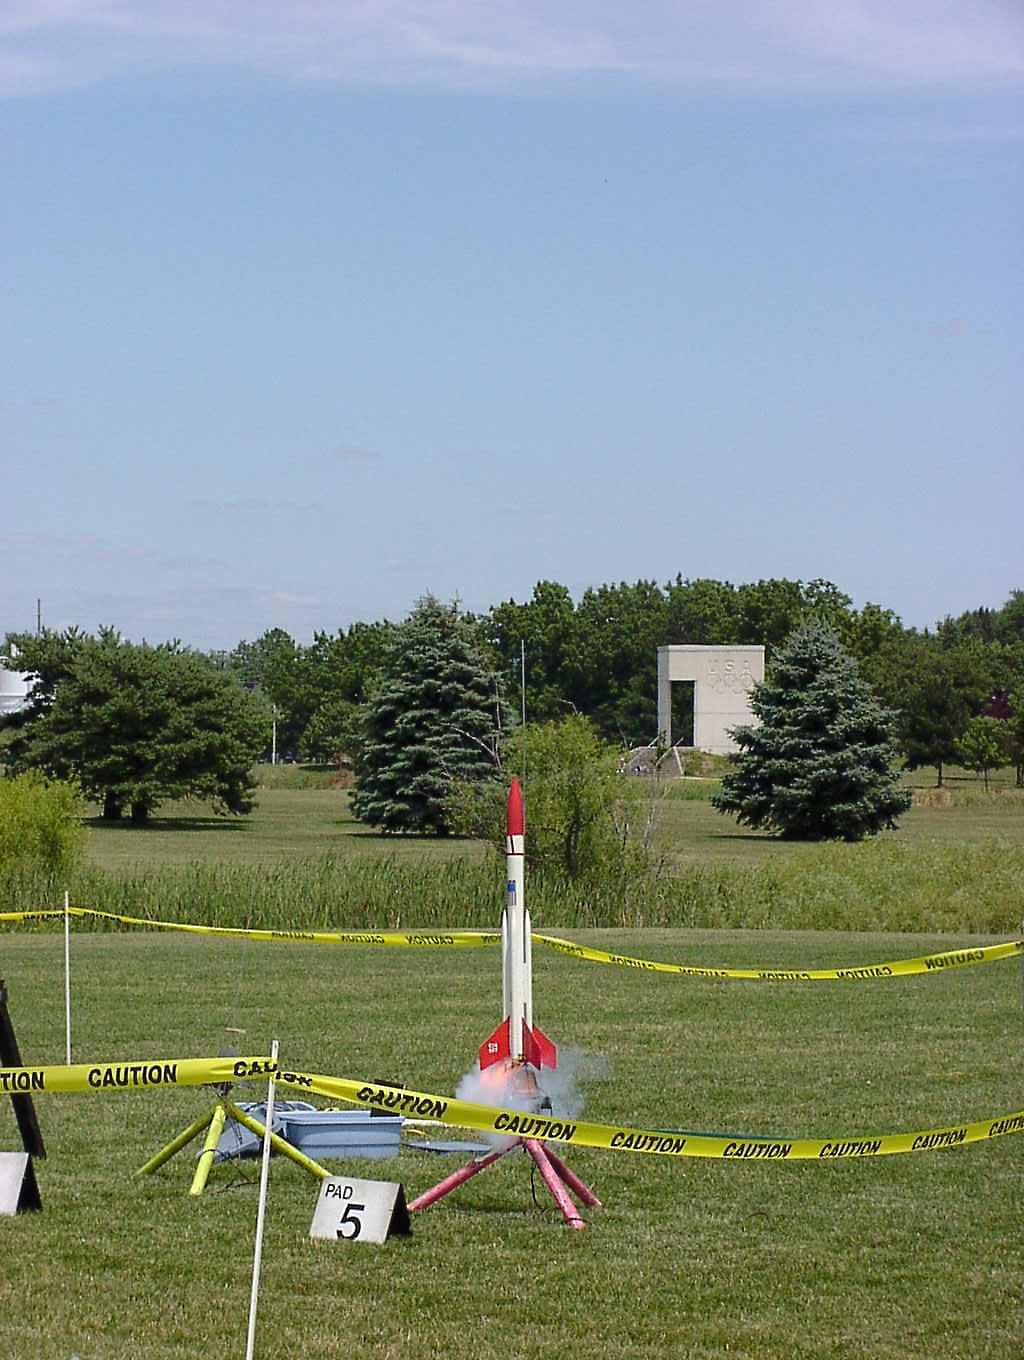 Liftoff of Chris Deem's BATFE Special with a cluster of four D11 and four E9 motors.  Two of the D11s failed at ignition, damaging the rocket, but it recovered and made a safe, stable flight.  This is image 1 of a series of 16 taken at 15 frames per second.  Photo by Greg Smith.